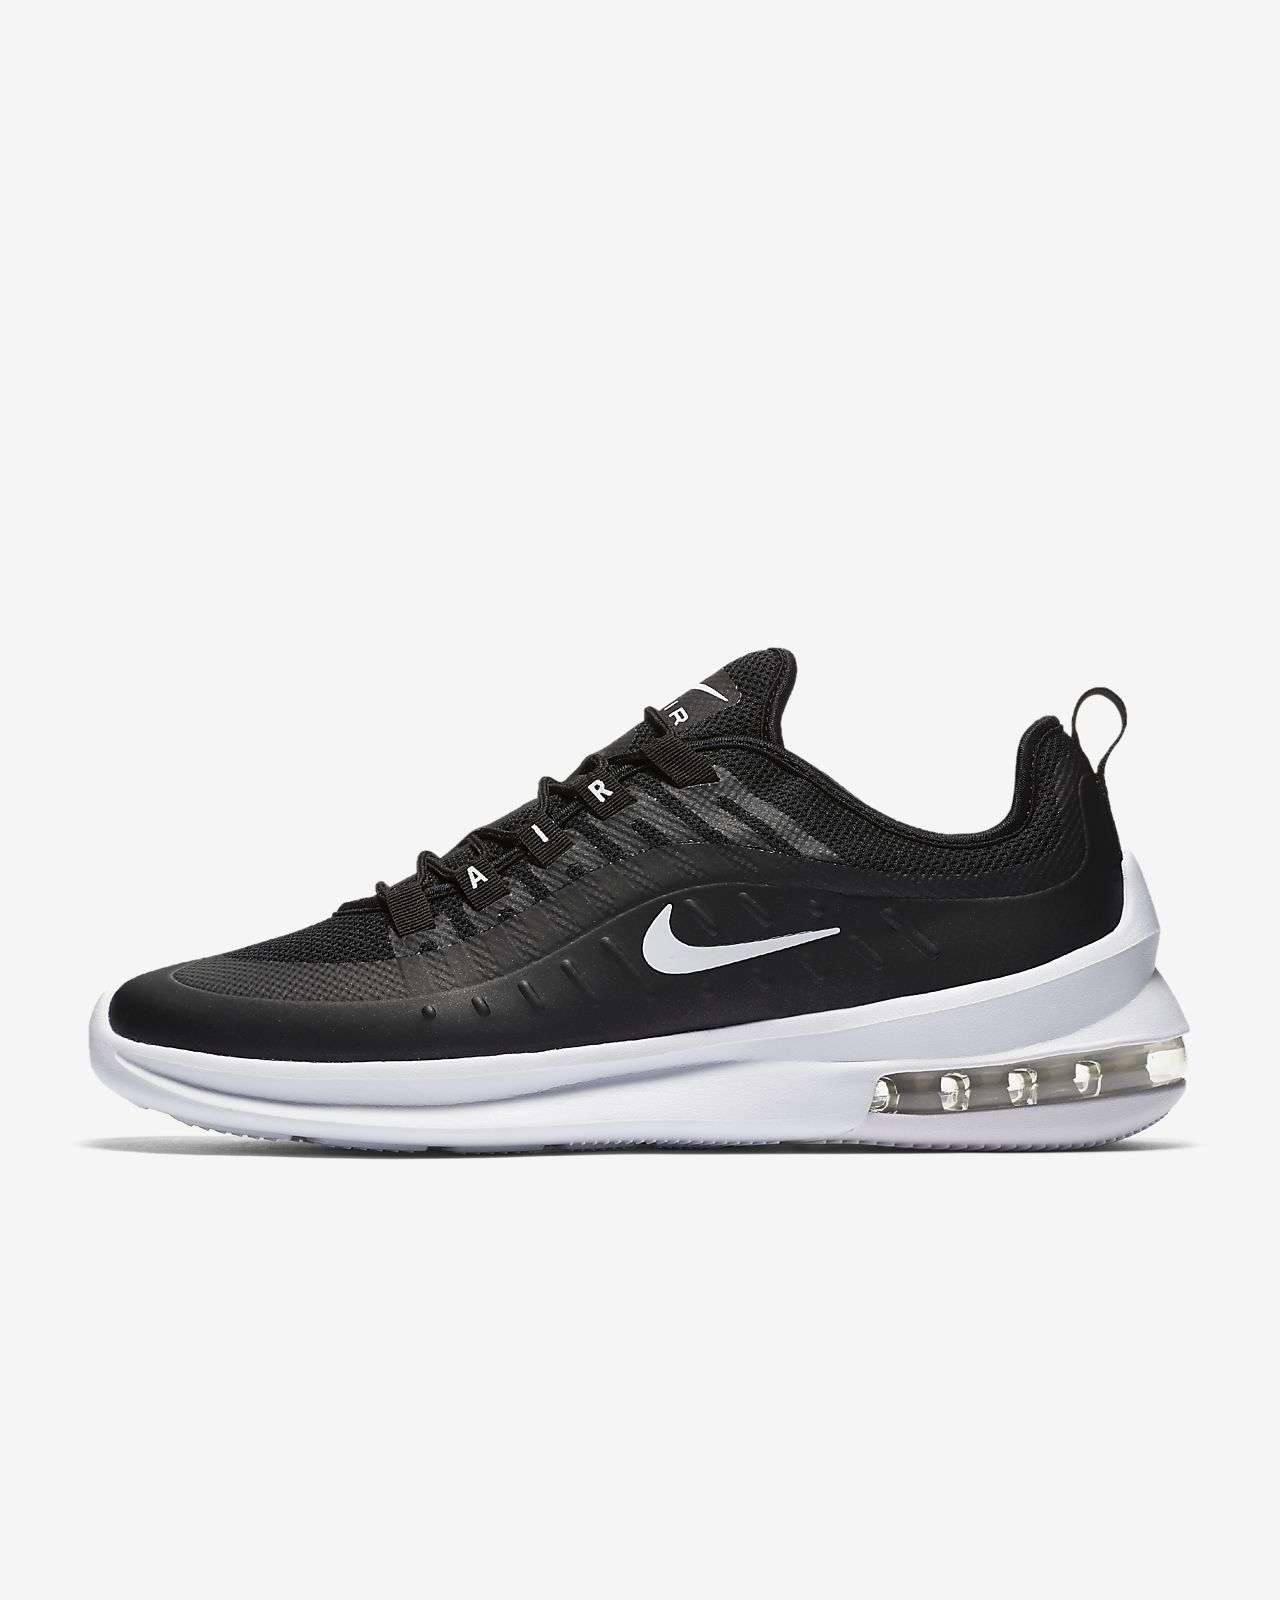 half off 22dc1 a0add ... Nike Air Max Axis Men s Shoe